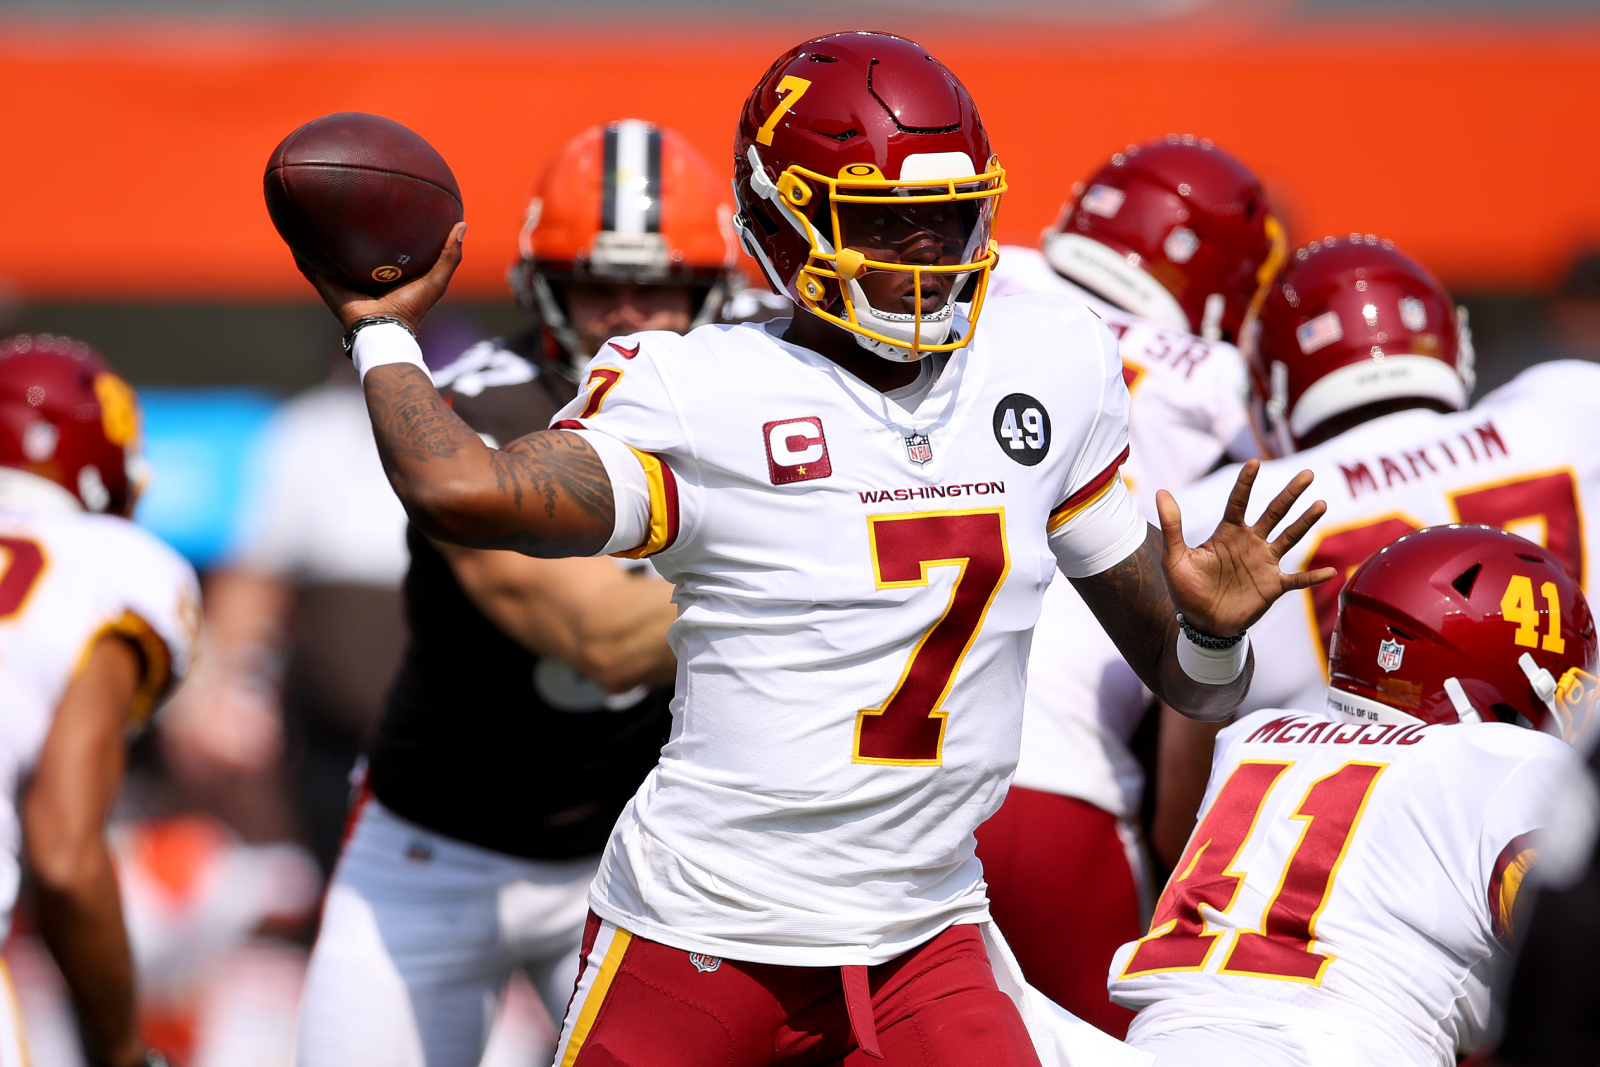 The Washington Football Team has another QB controversy after Kyle Allen's injury. Ron Rivera has since revealed his plan for Dwayne Haskins.